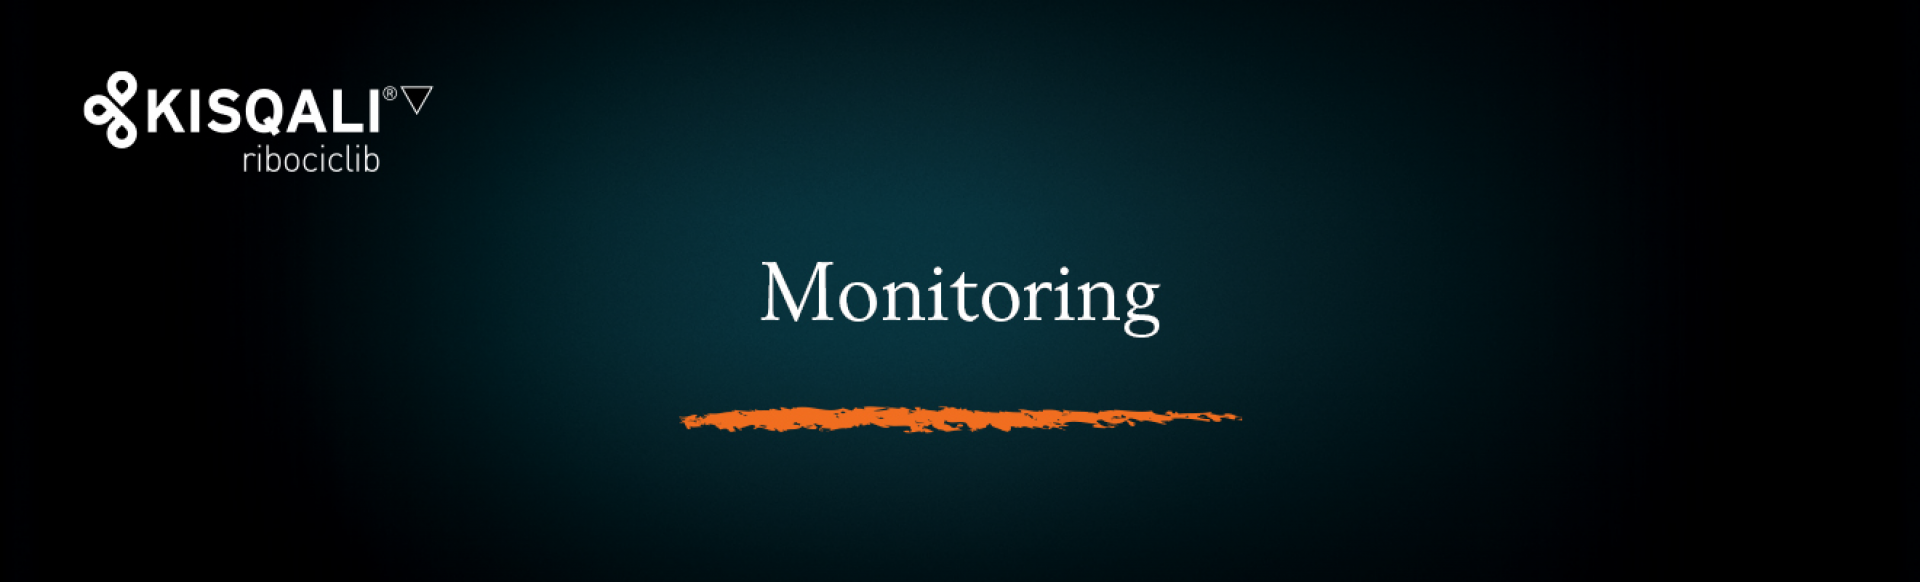 Top banner. Monitoring